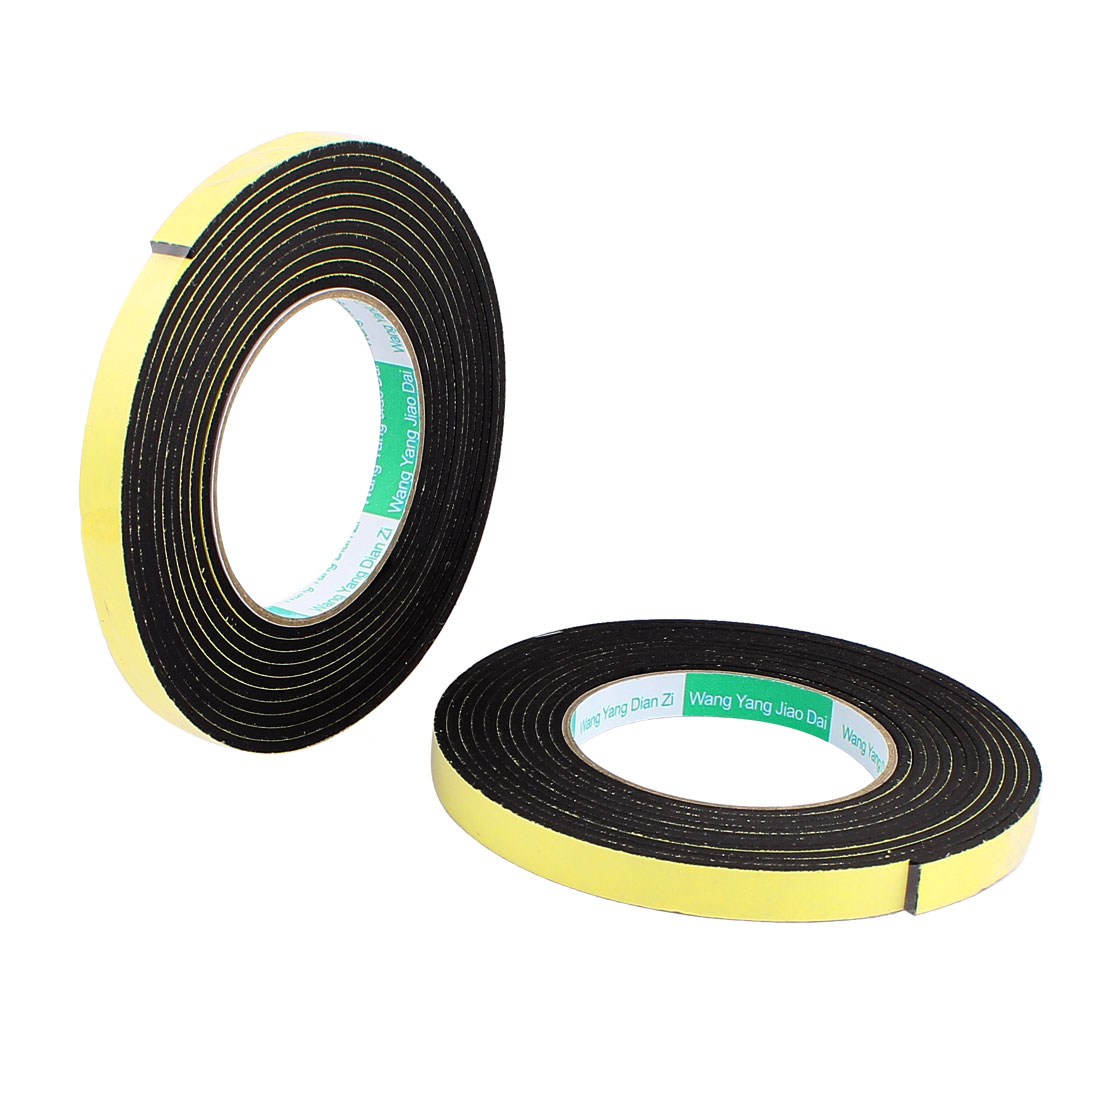 2Pcs 1.2CM Width 4M Long 3MM Thick Single Sided Sealing Shockproof Sponge Tape